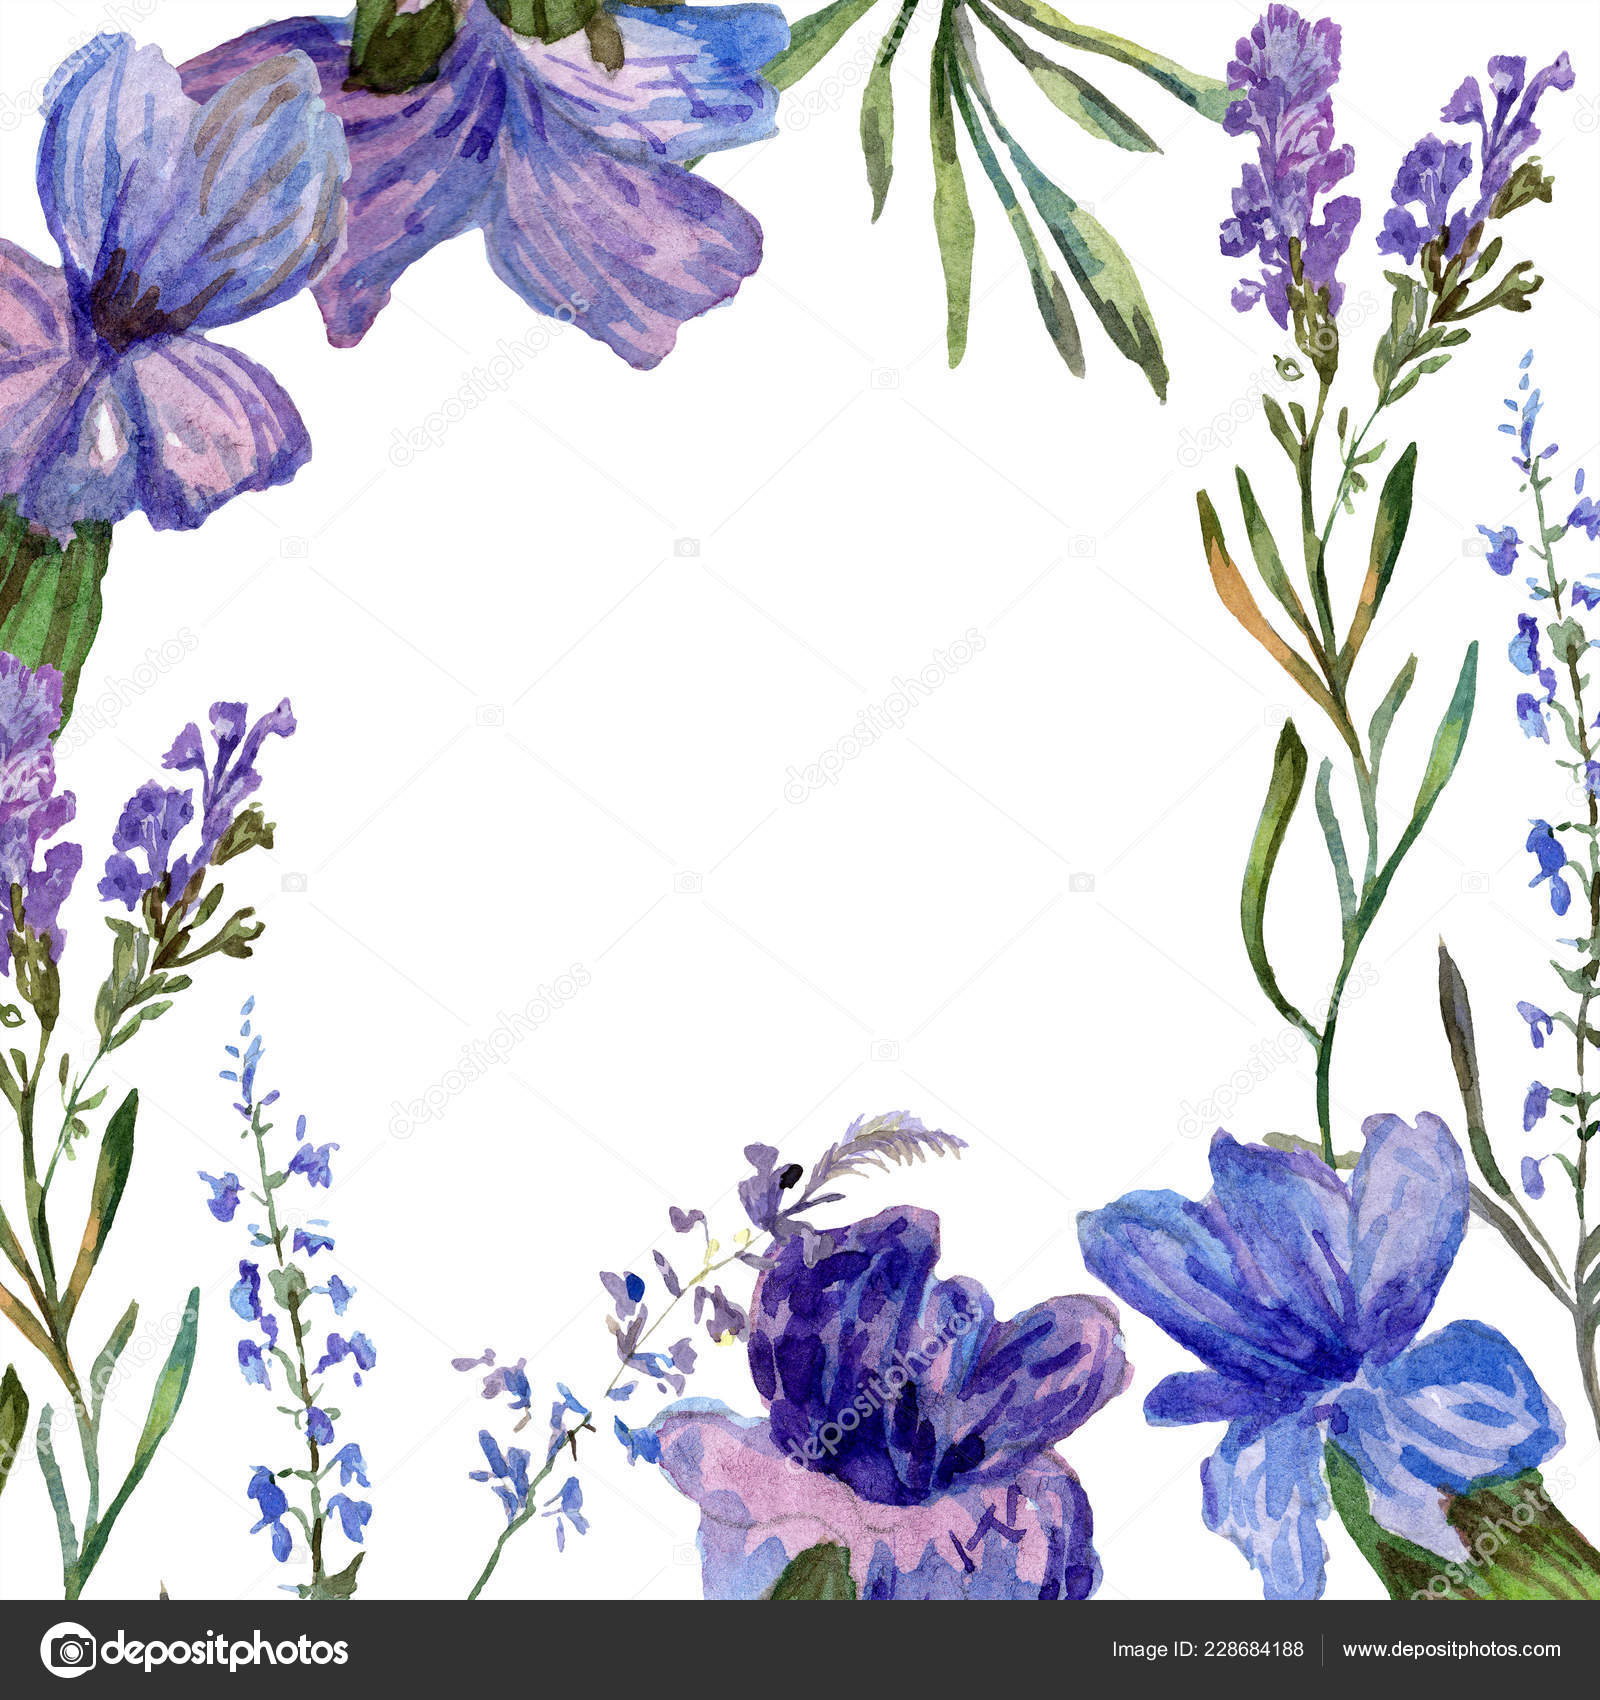 Purple Lavender Flowers Wild Spring Flowers Watercolor Background Illustration Frame Stock Photo Image By C Andreyanush 228684188